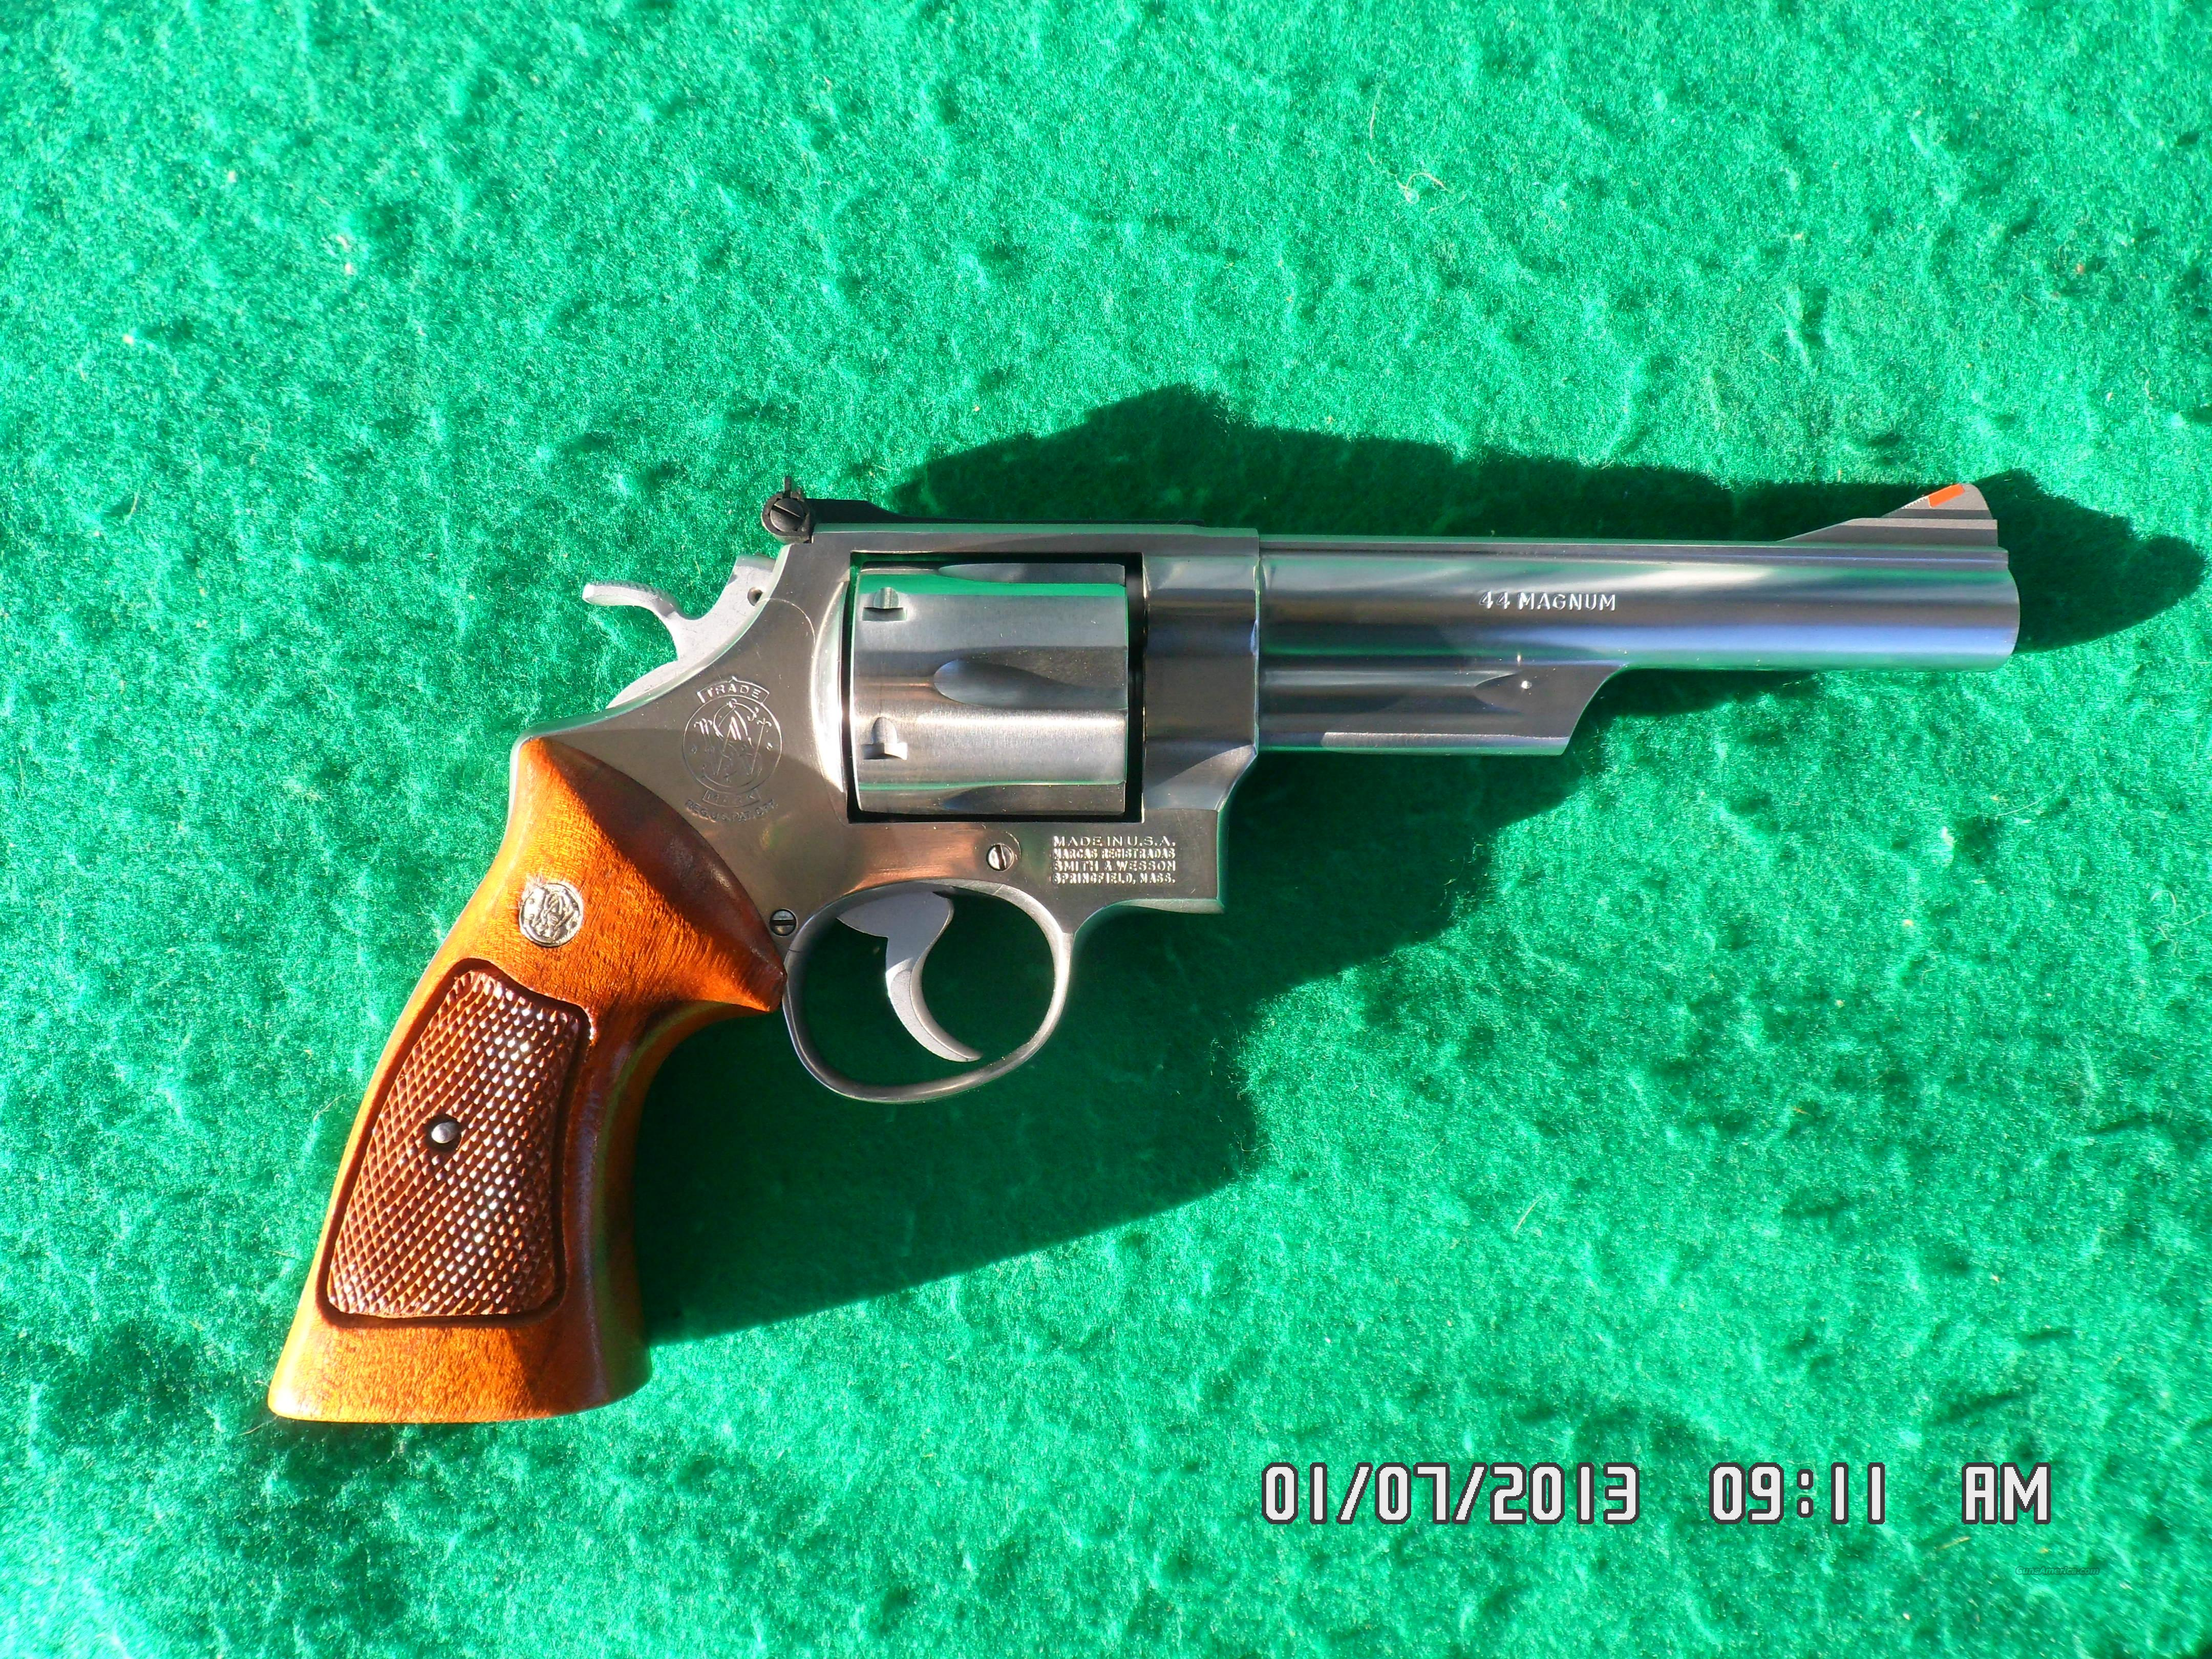 SMITH & WESSON MODEL 629-1 STAINLESS REVOLVER 44 MAG. EARLY 1980'S 99% CONDITION!  Guns > Pistols > Smith & Wesson Revolvers > Model 629